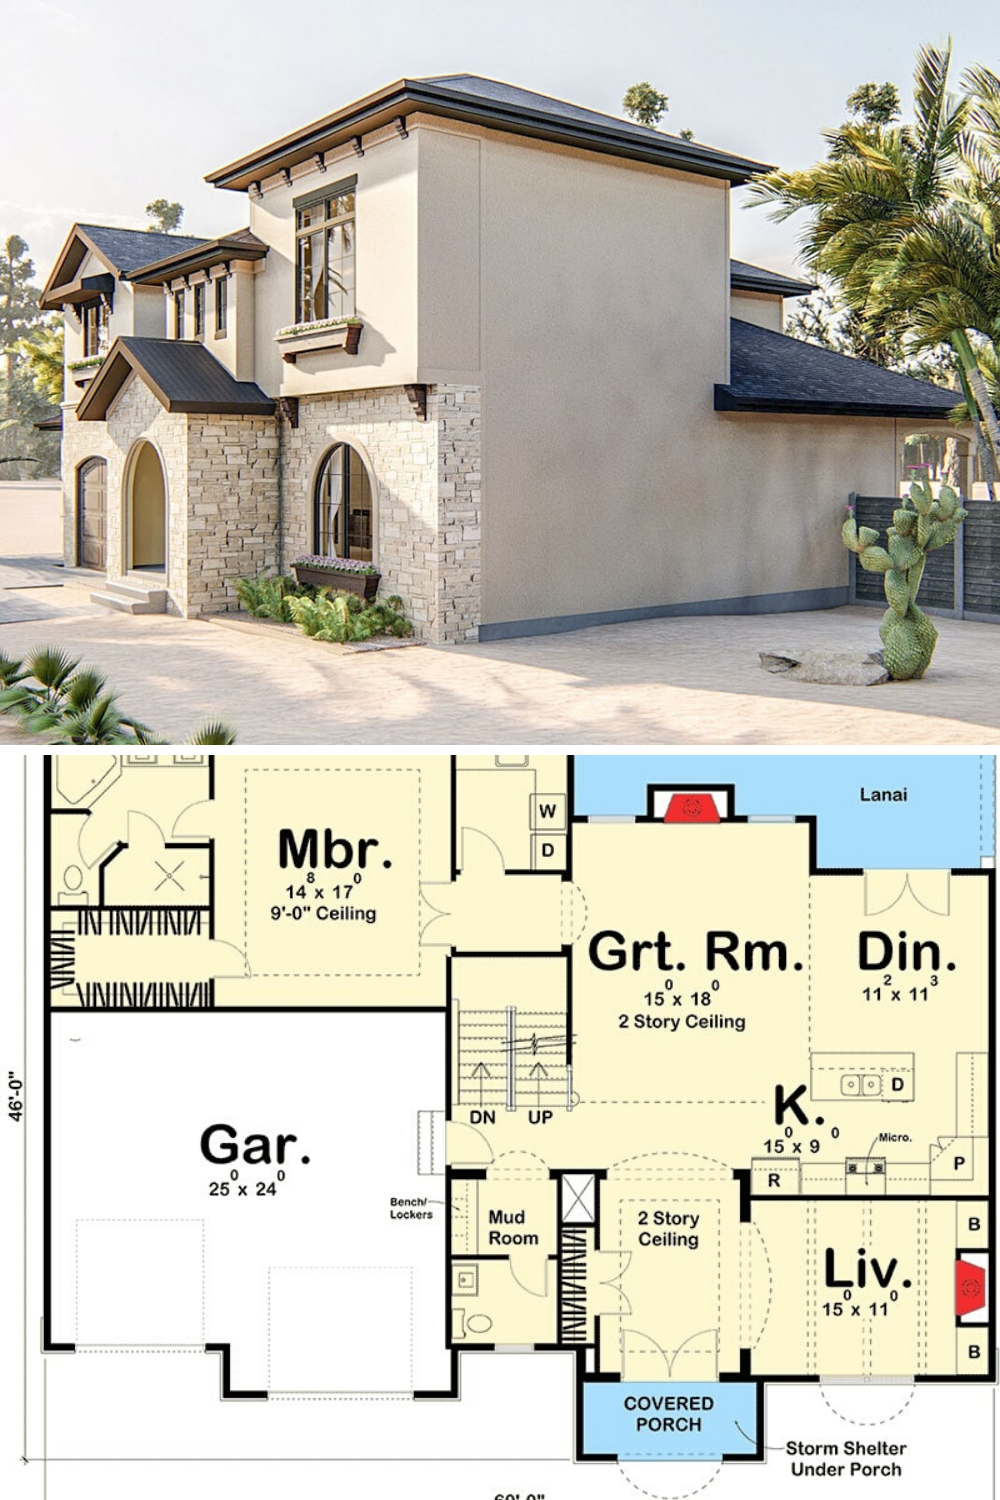 4 Bedroom Two Story Adobe Home Floor Plan Adobe House Tuscan House Plans Mansion Floor Plan